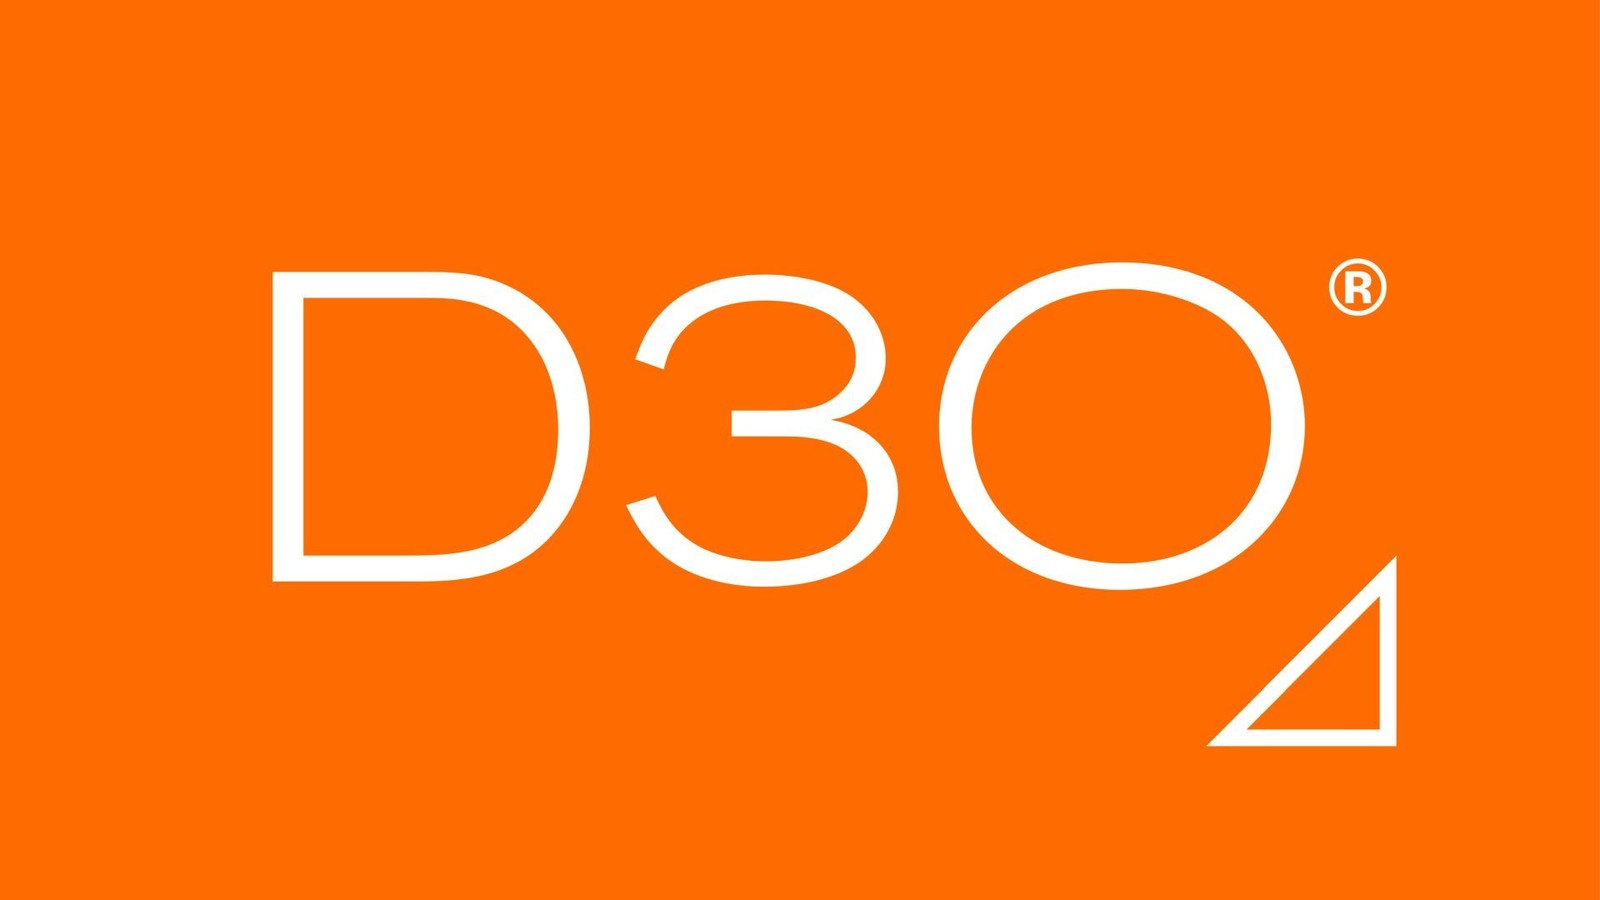 Leading Impact Protection Company D3O Acquired by Elysian Capital III LP